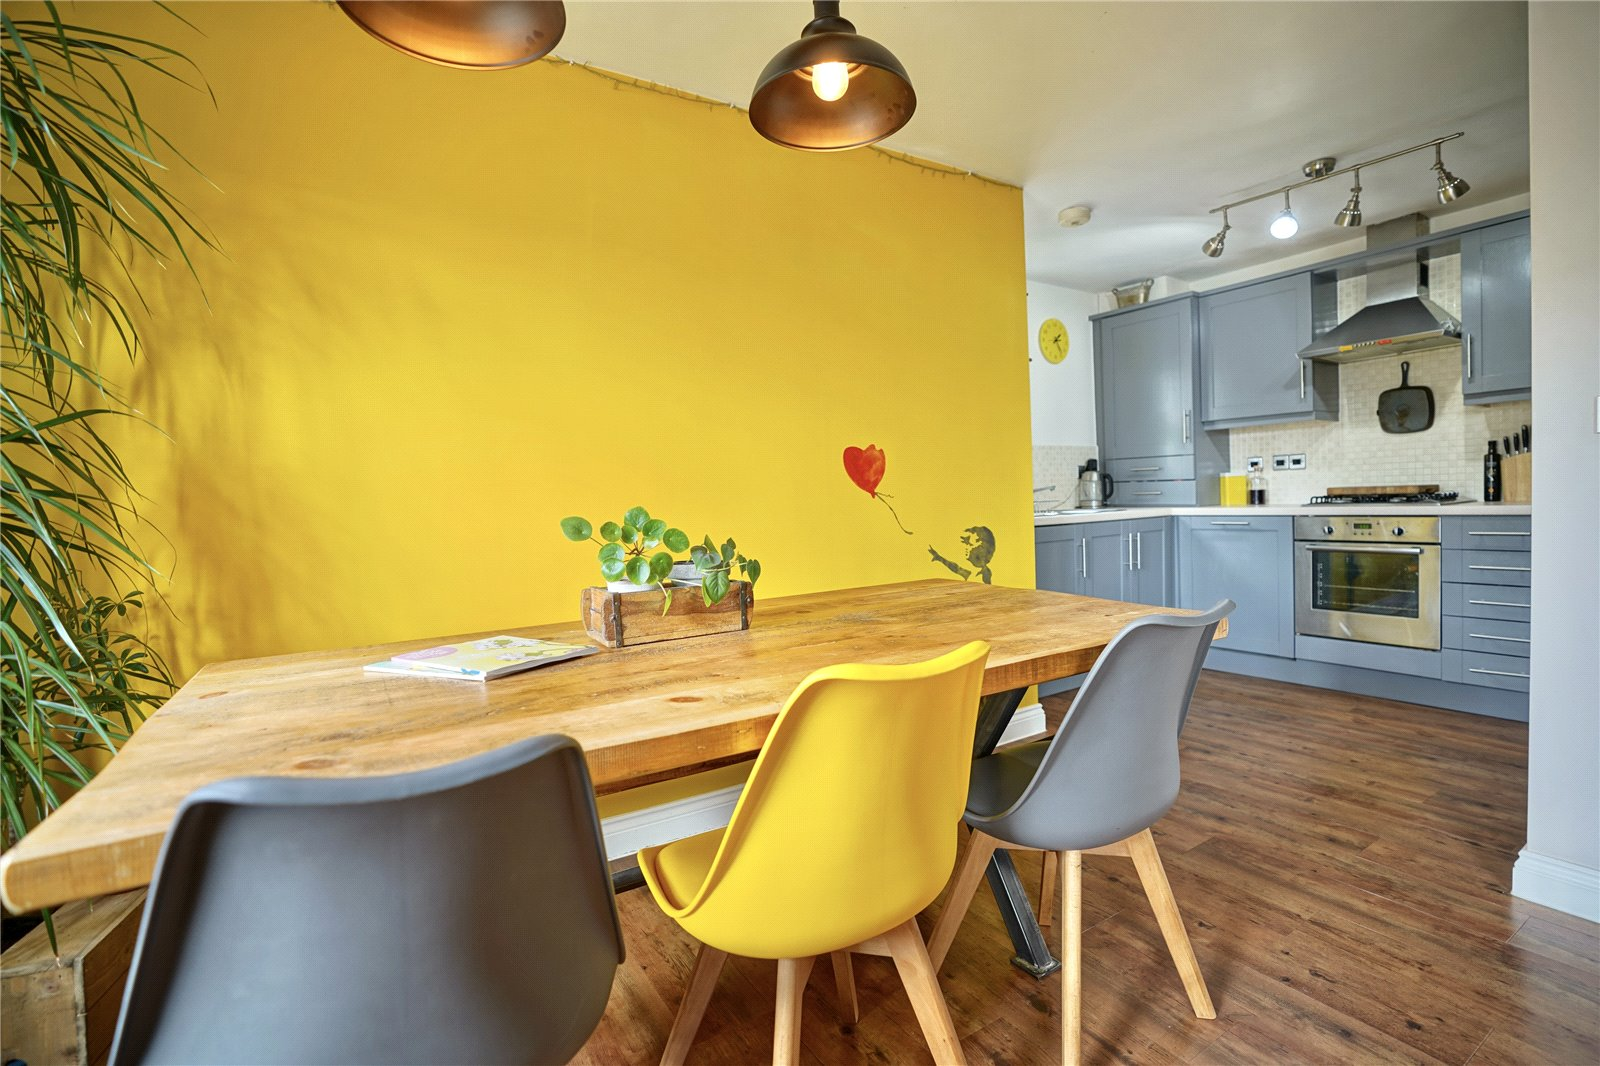 2 bed apartment for sale in St. Ives, PE27 5QL  - Property Image 4